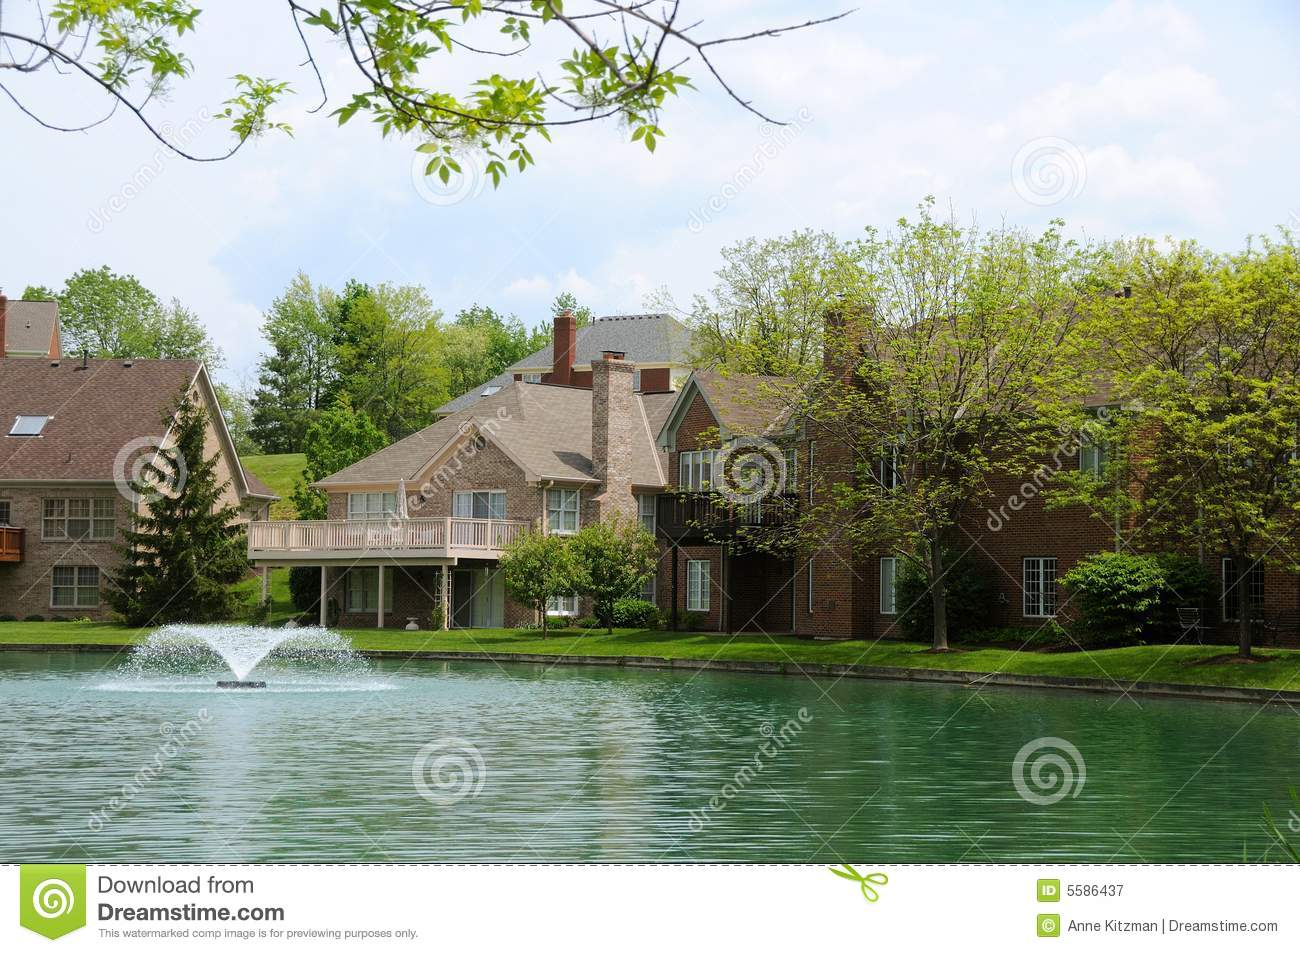 Lakeside homes stock image image of architecture nature for Lakeside home